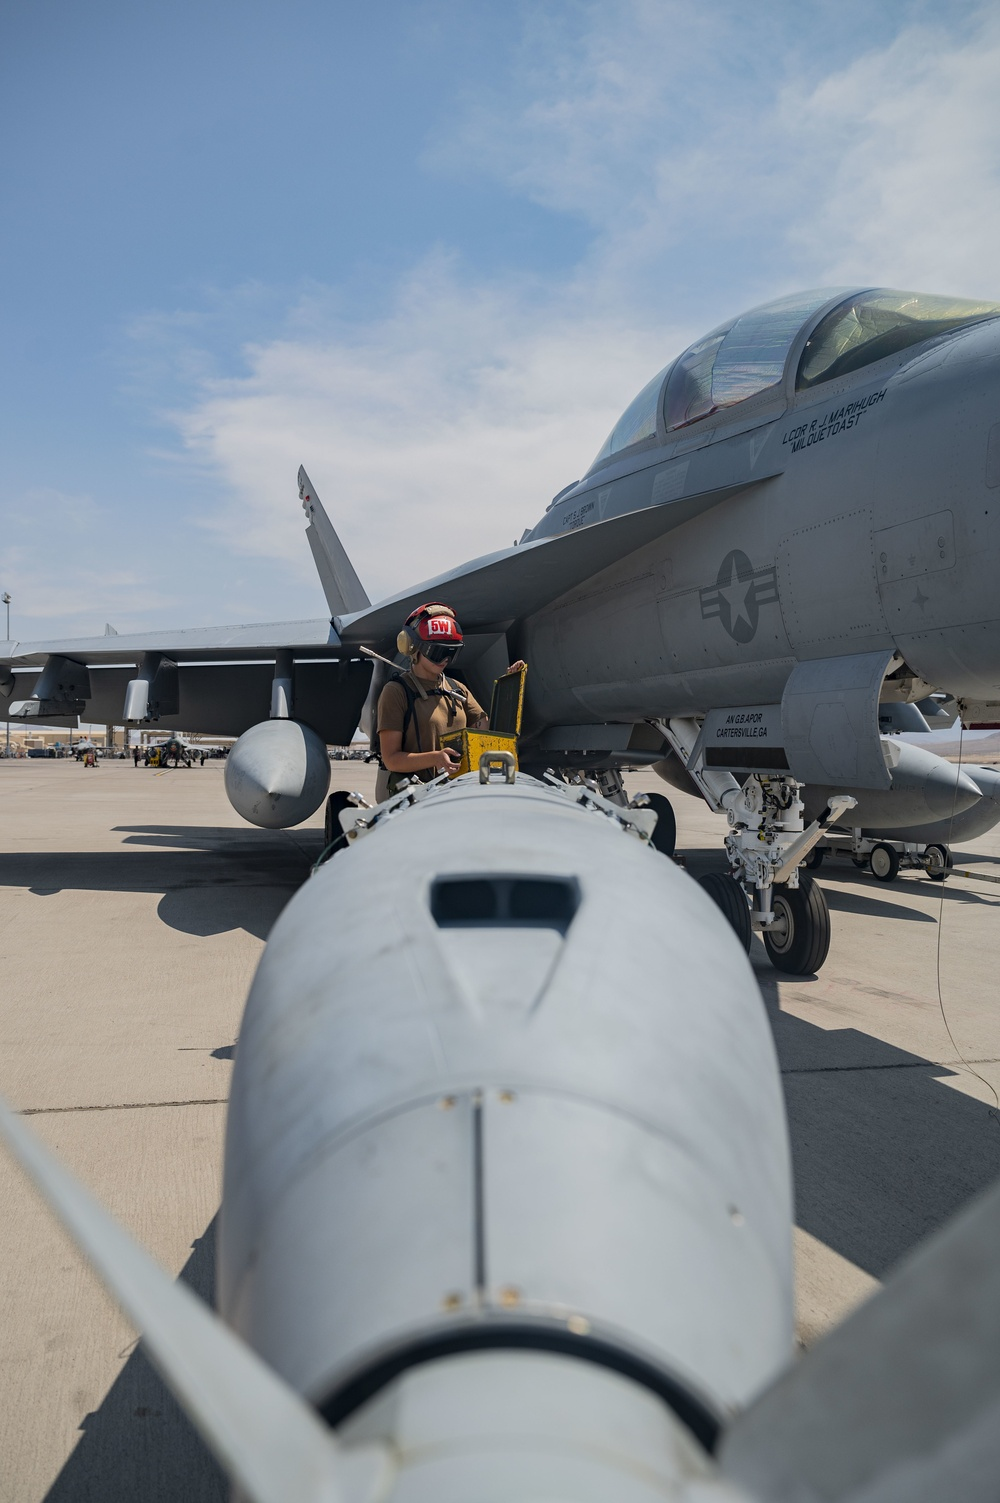 The U.S. Navy supports Red Flag 21-3 at Nellis AFB